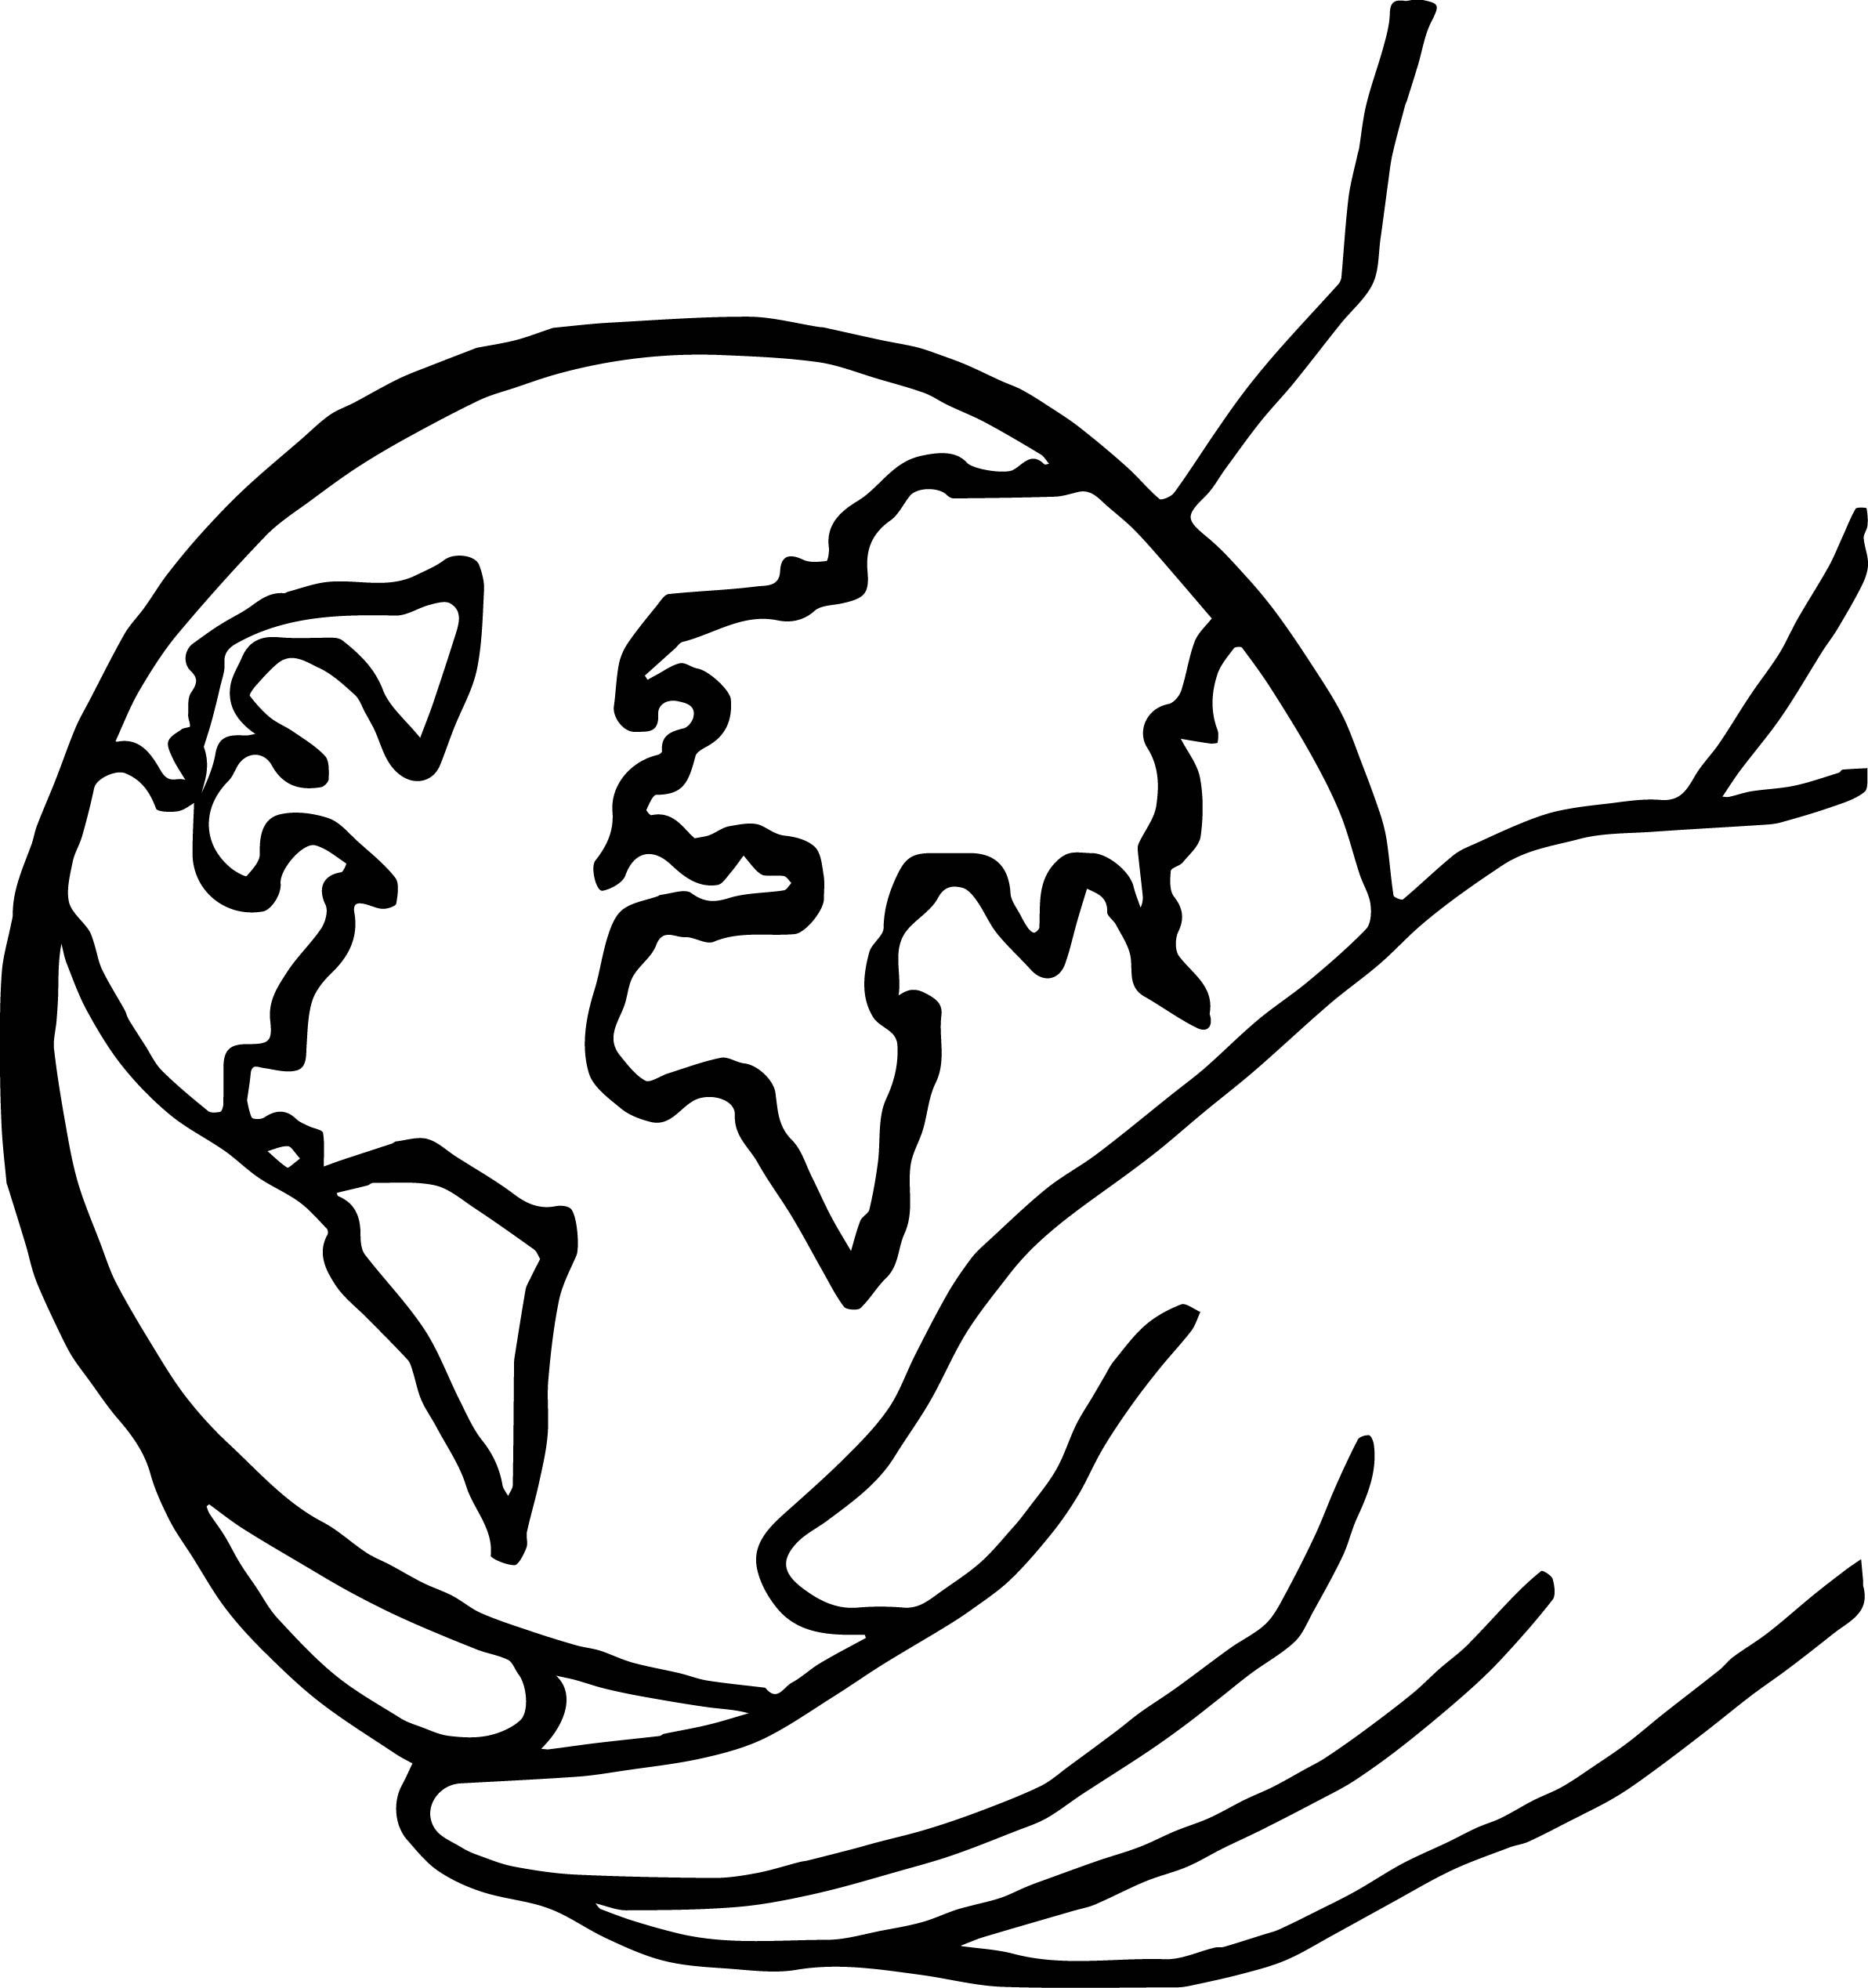 Earth globe hold on hand coloring page for Handshake coloring page